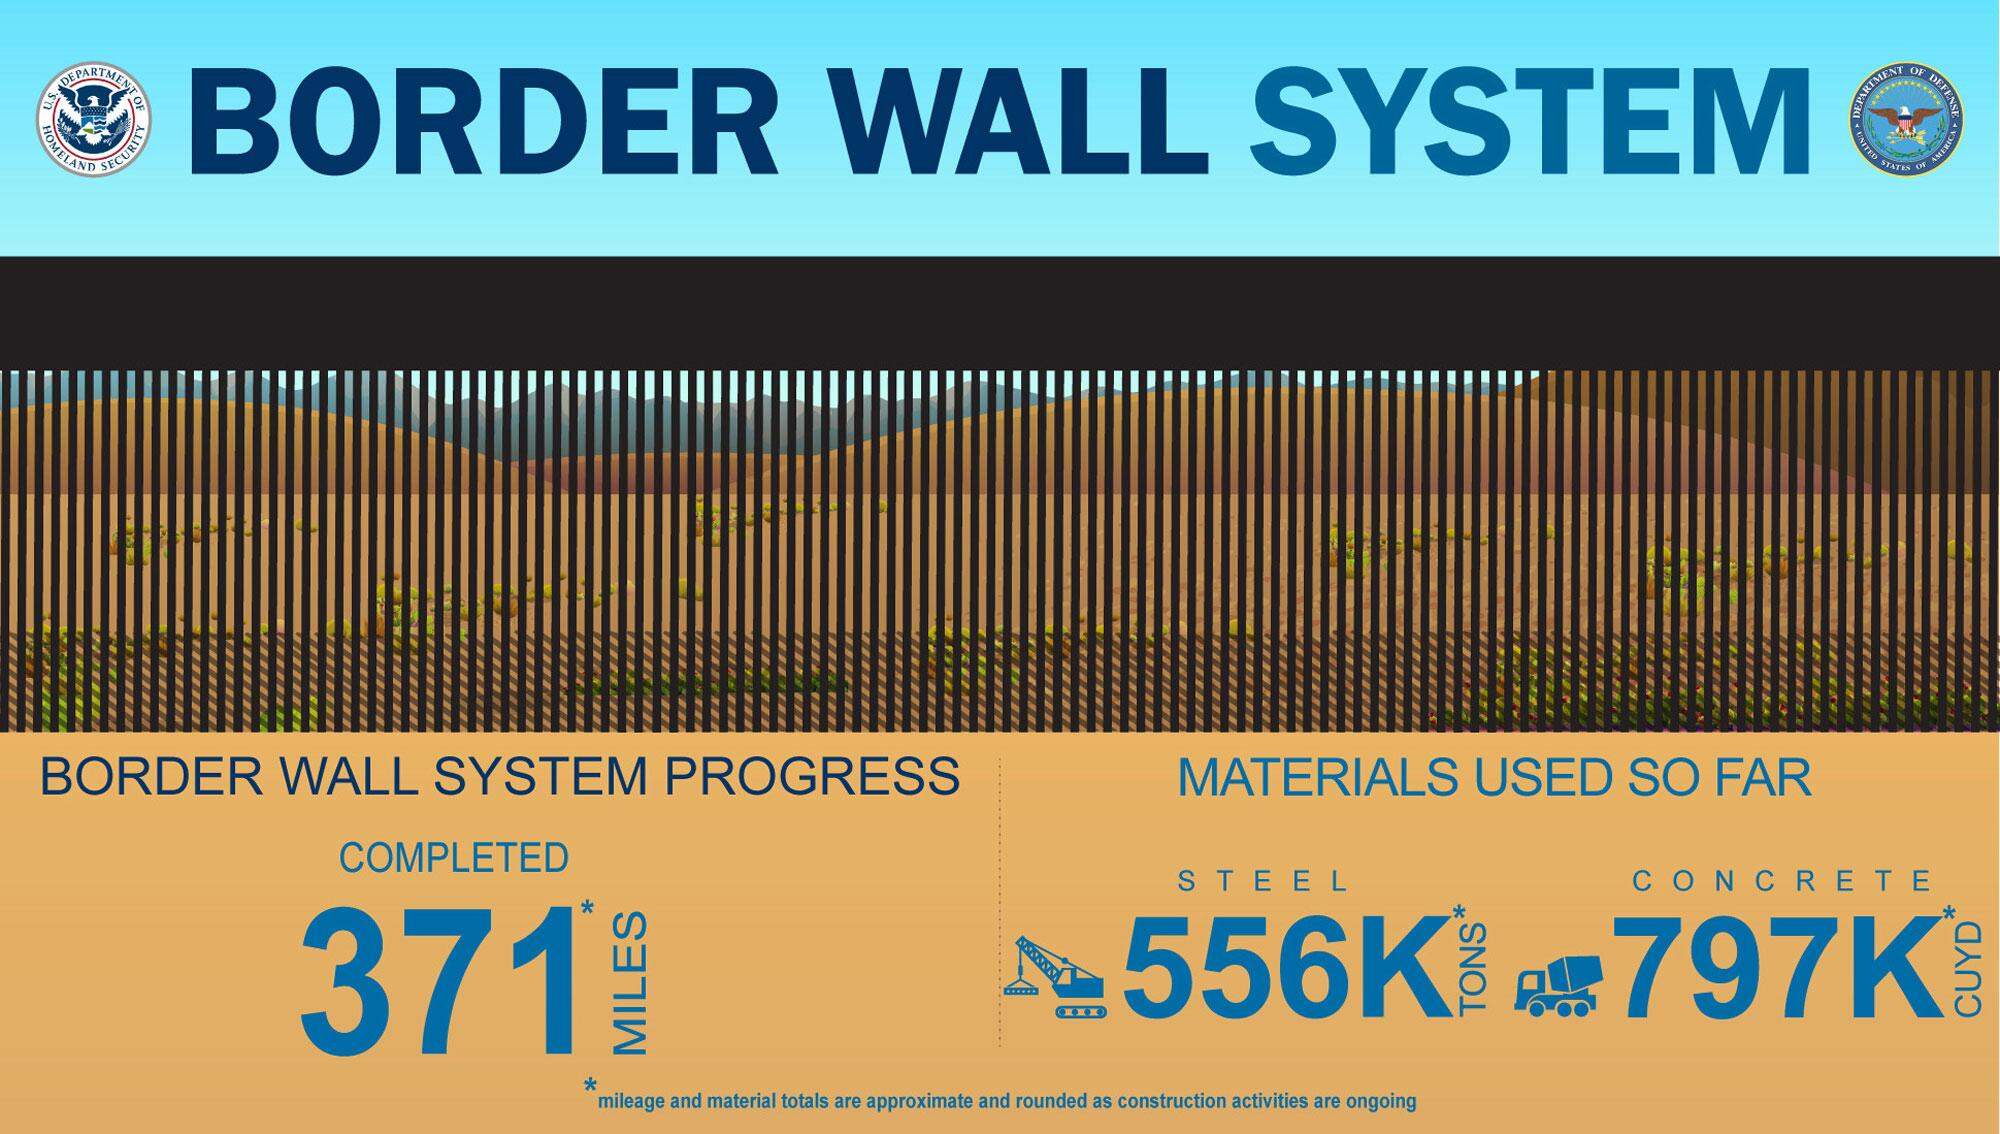 Infographic showing border wall statistics: 371 miles built; 556,000 tons of steel; 797,000 cubic yards concrete